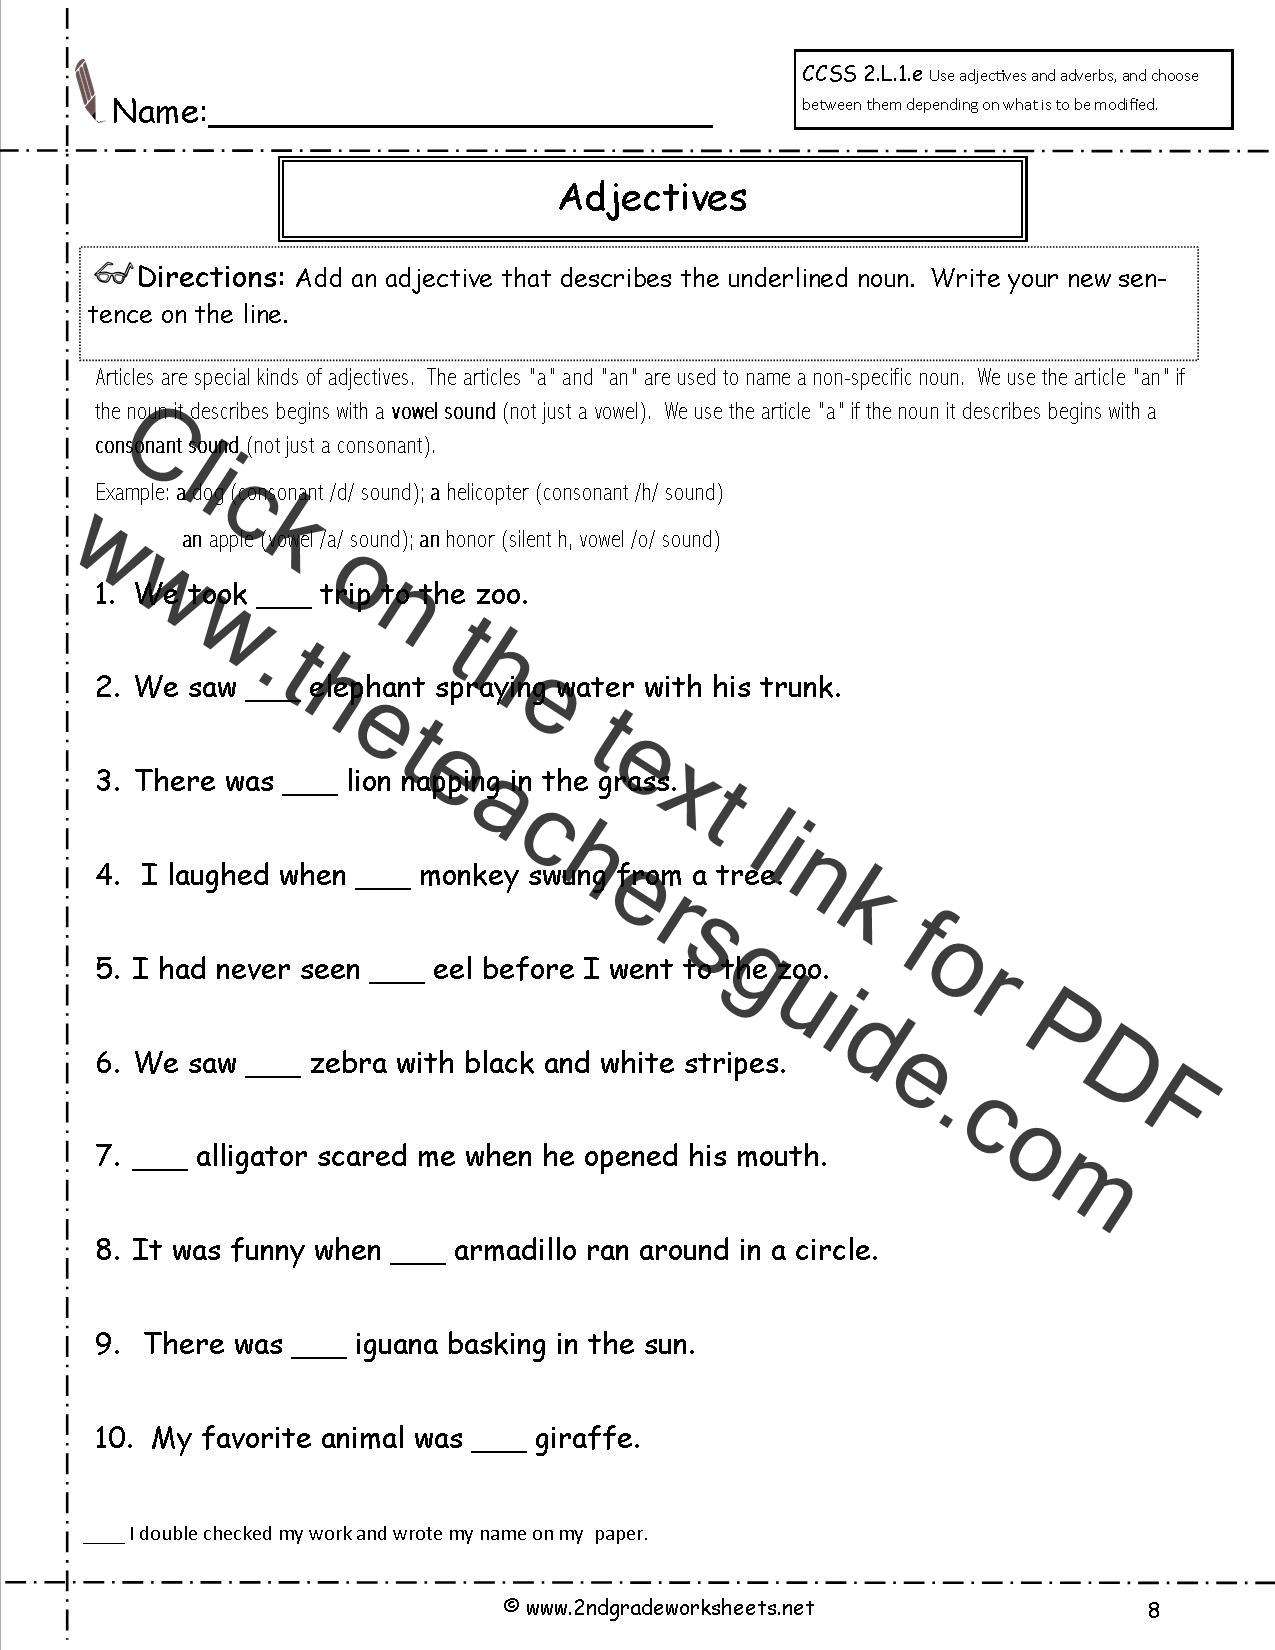 Free LanguageGrammar Worksheets and Printouts – Grammar Worksheets